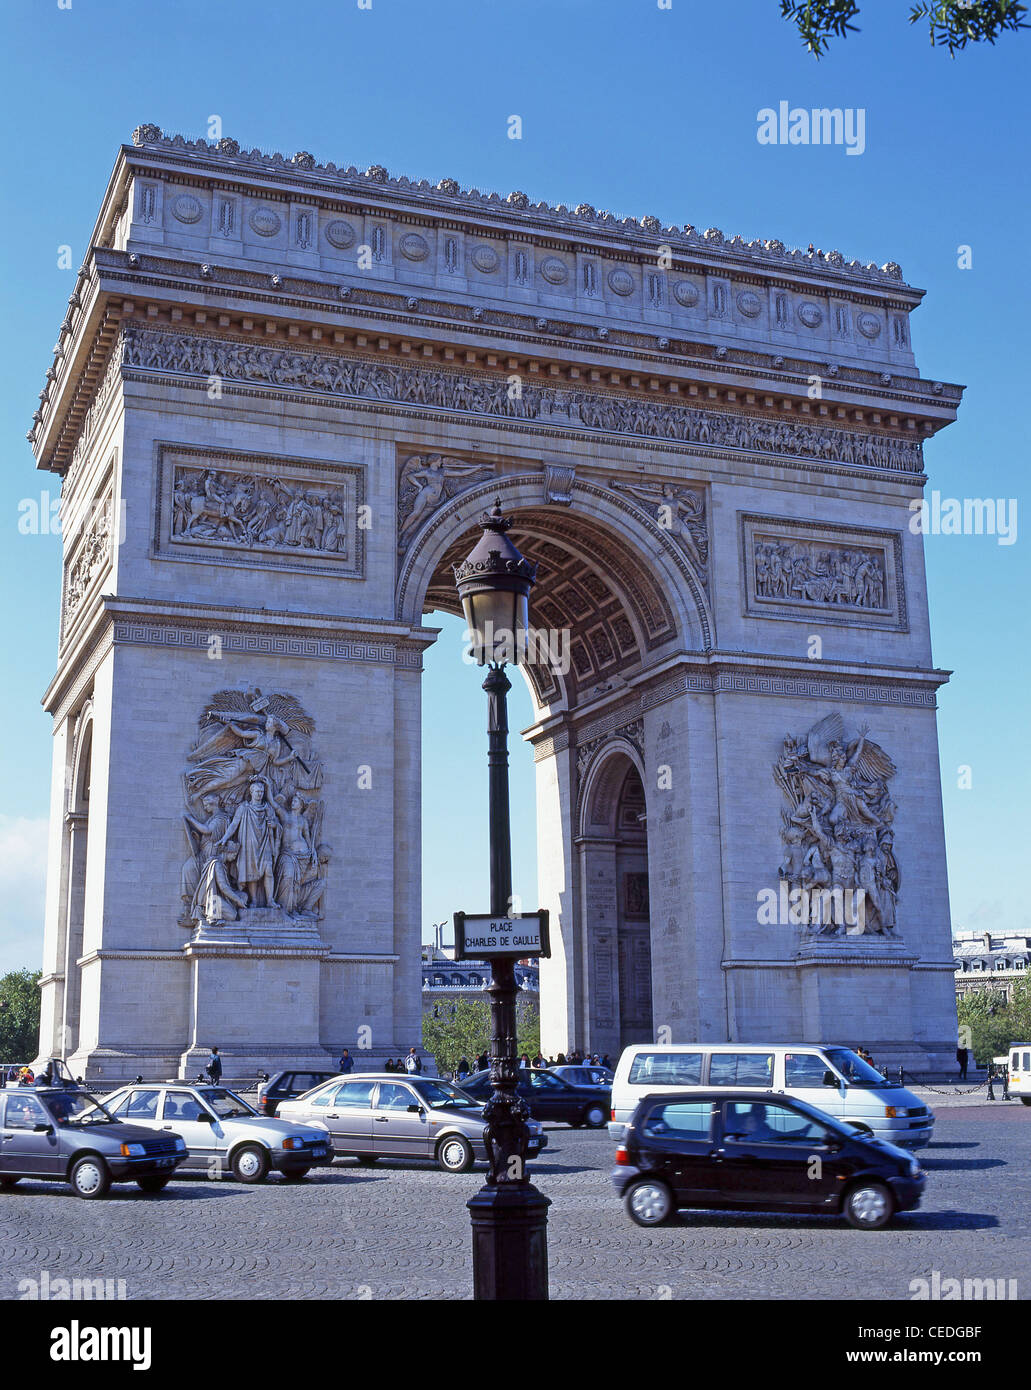 The Arc de Triomphe, Place Charles de Gaulle, Paris, Île-de-France, France - Stock Image